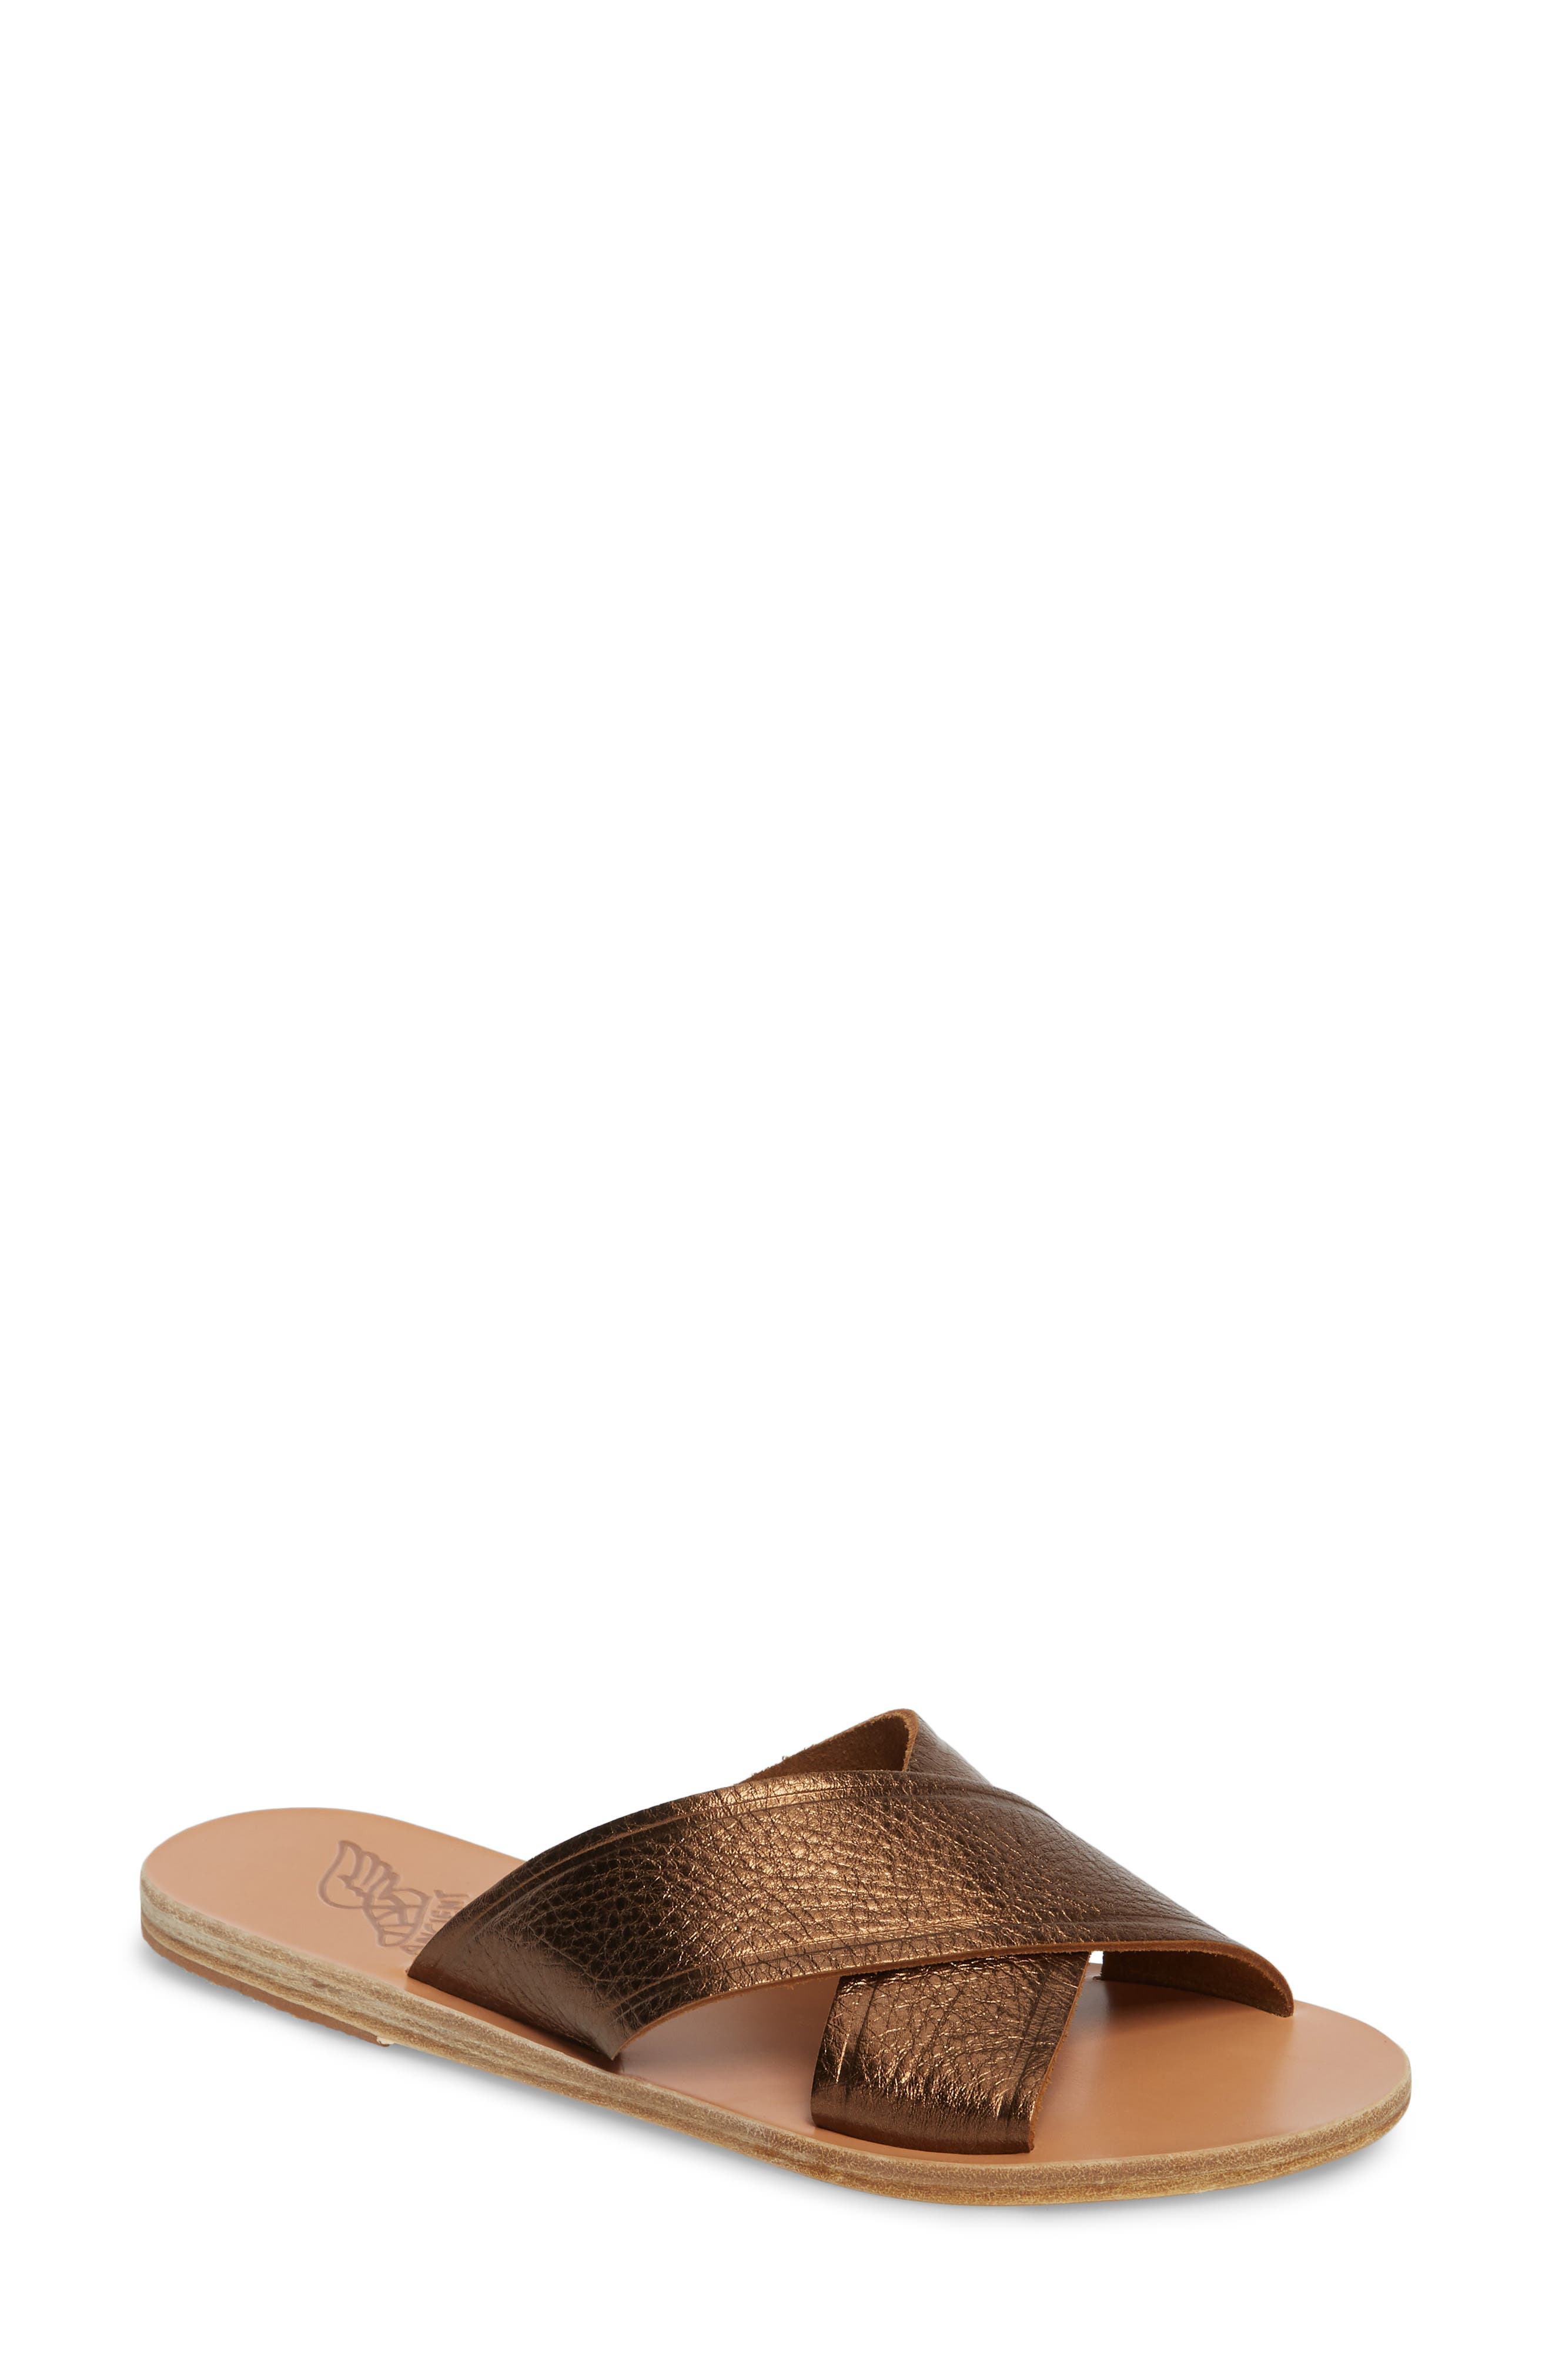 Thais Slide Sandal,                             Main thumbnail 1, color,                             Bronze/ Coco